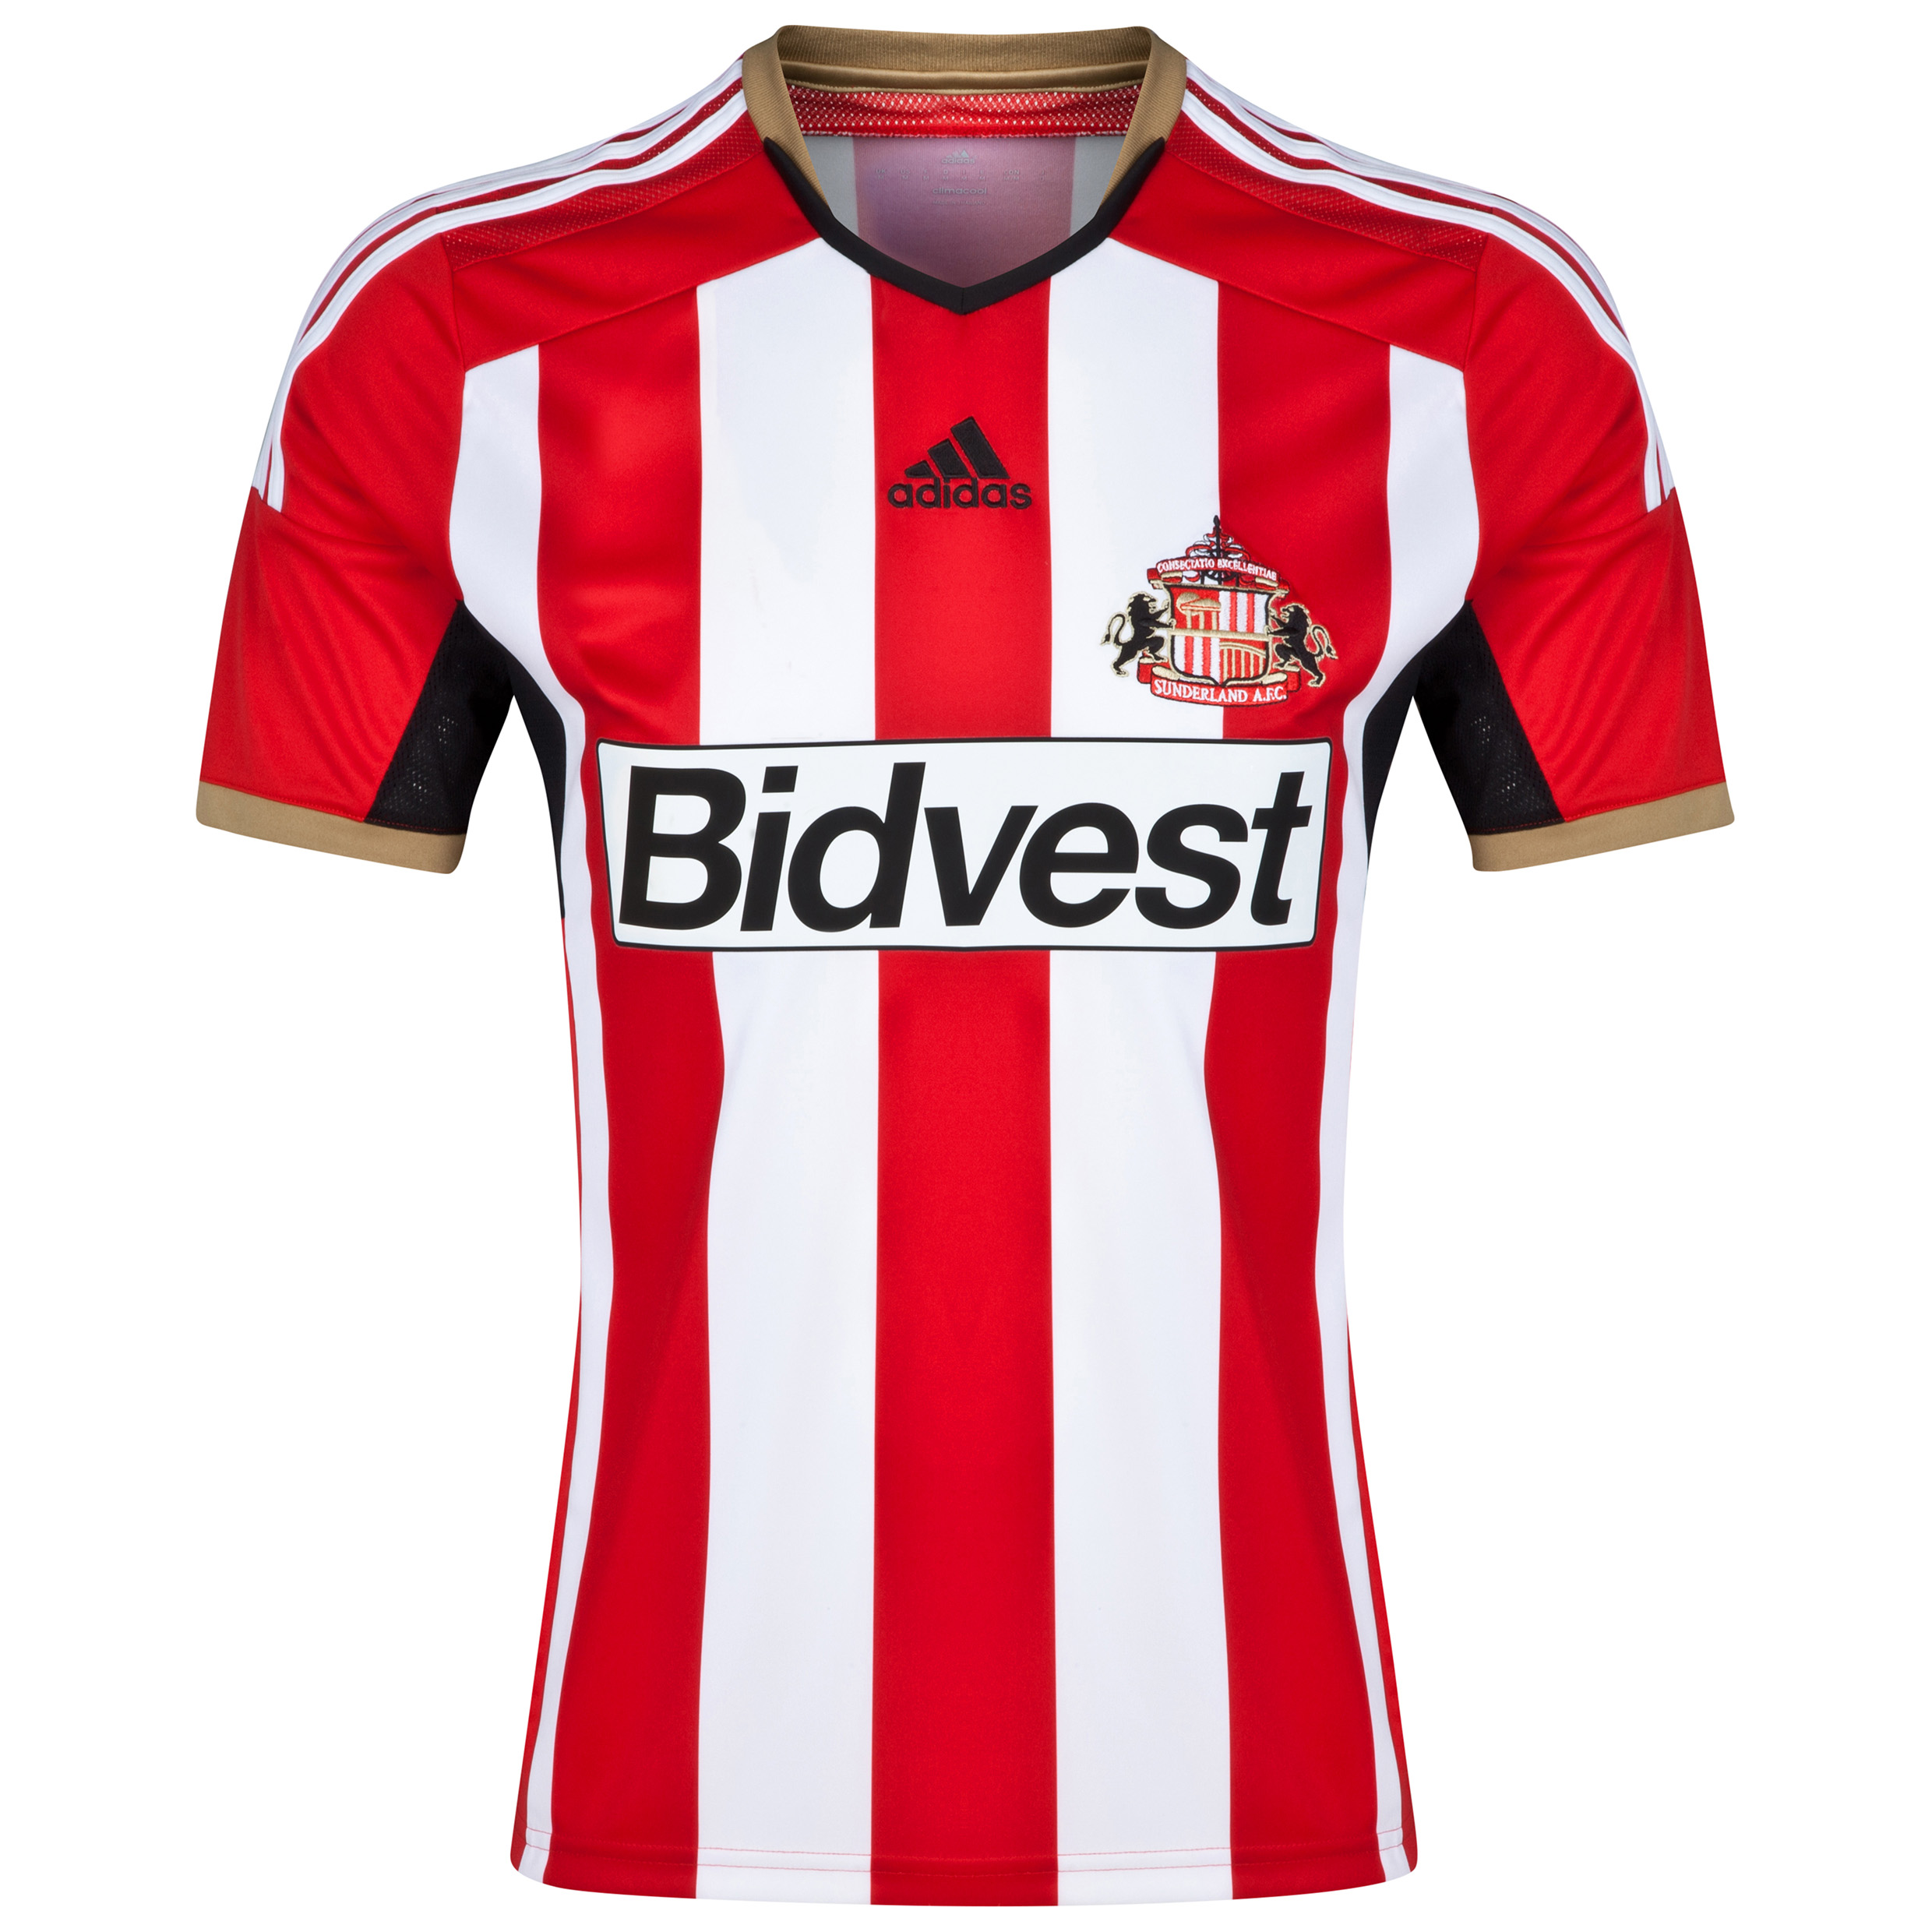 Sunderland Home Shirt 2014/15 Red